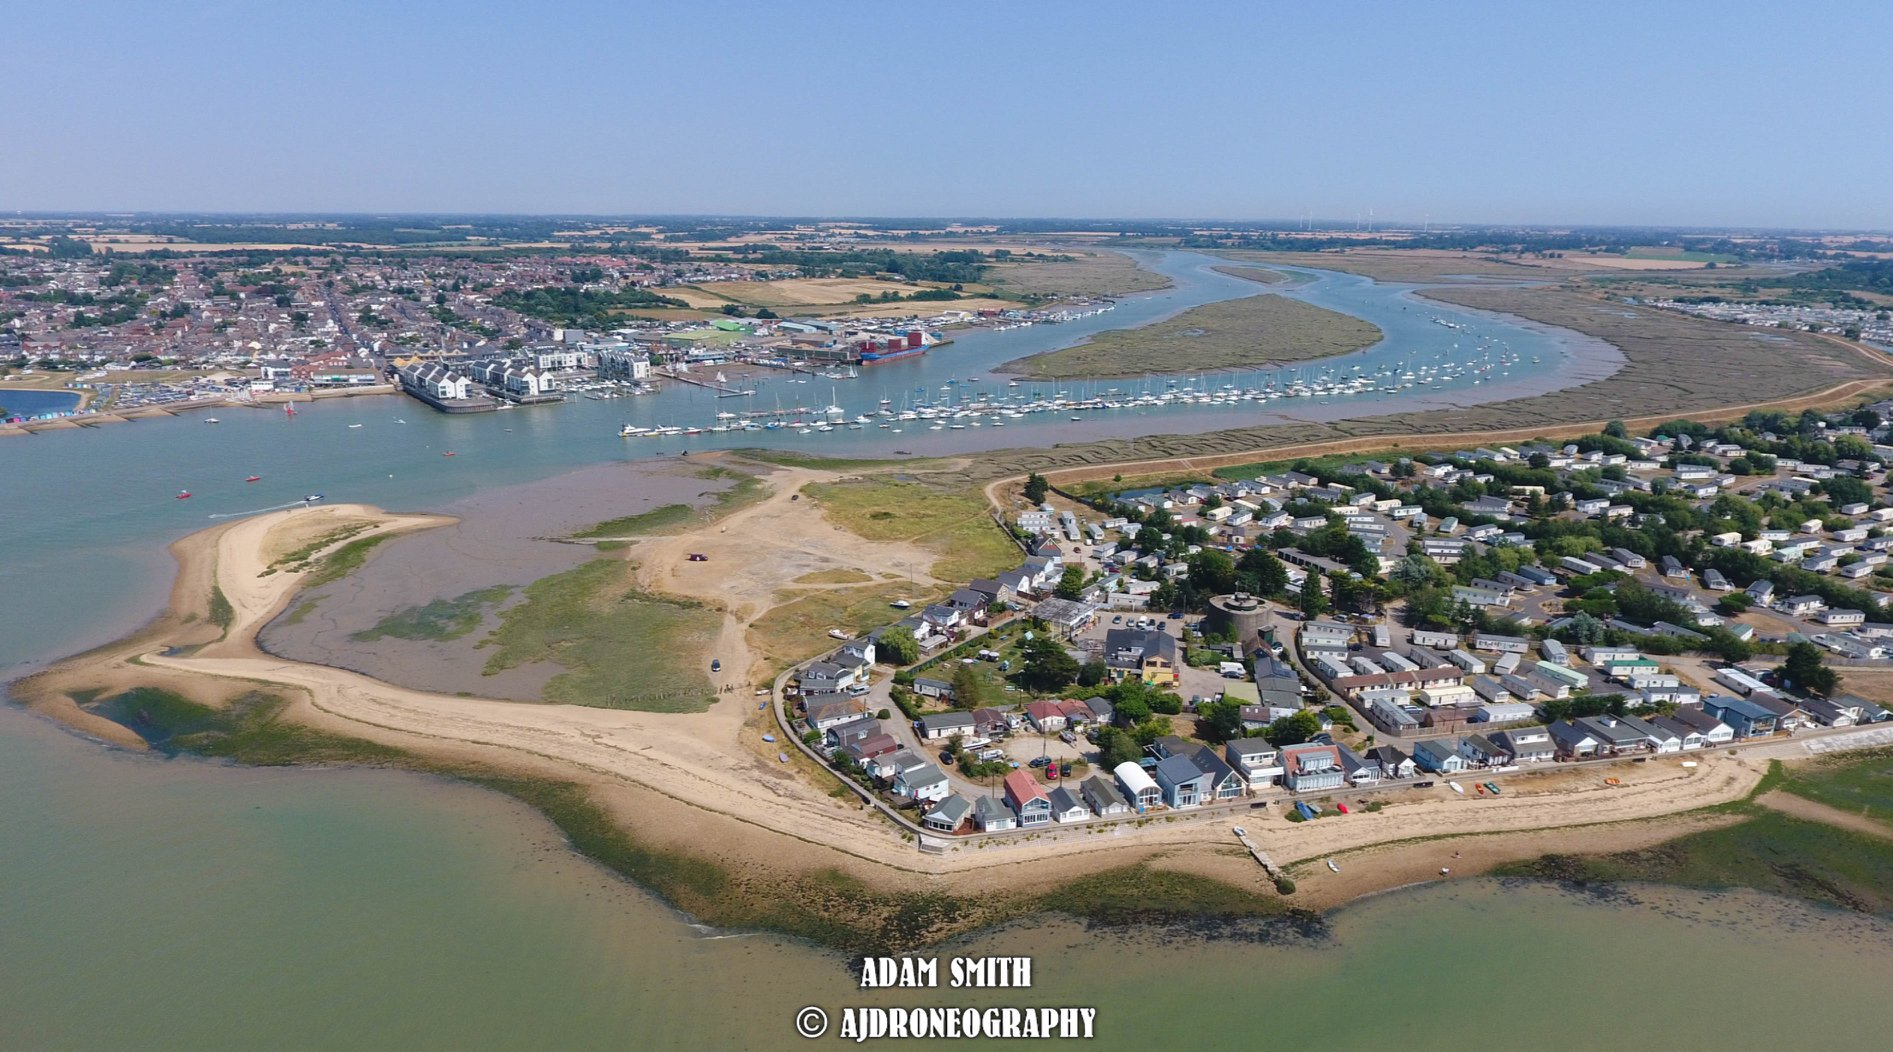 Area Guide for St. Osyth and Point Clear